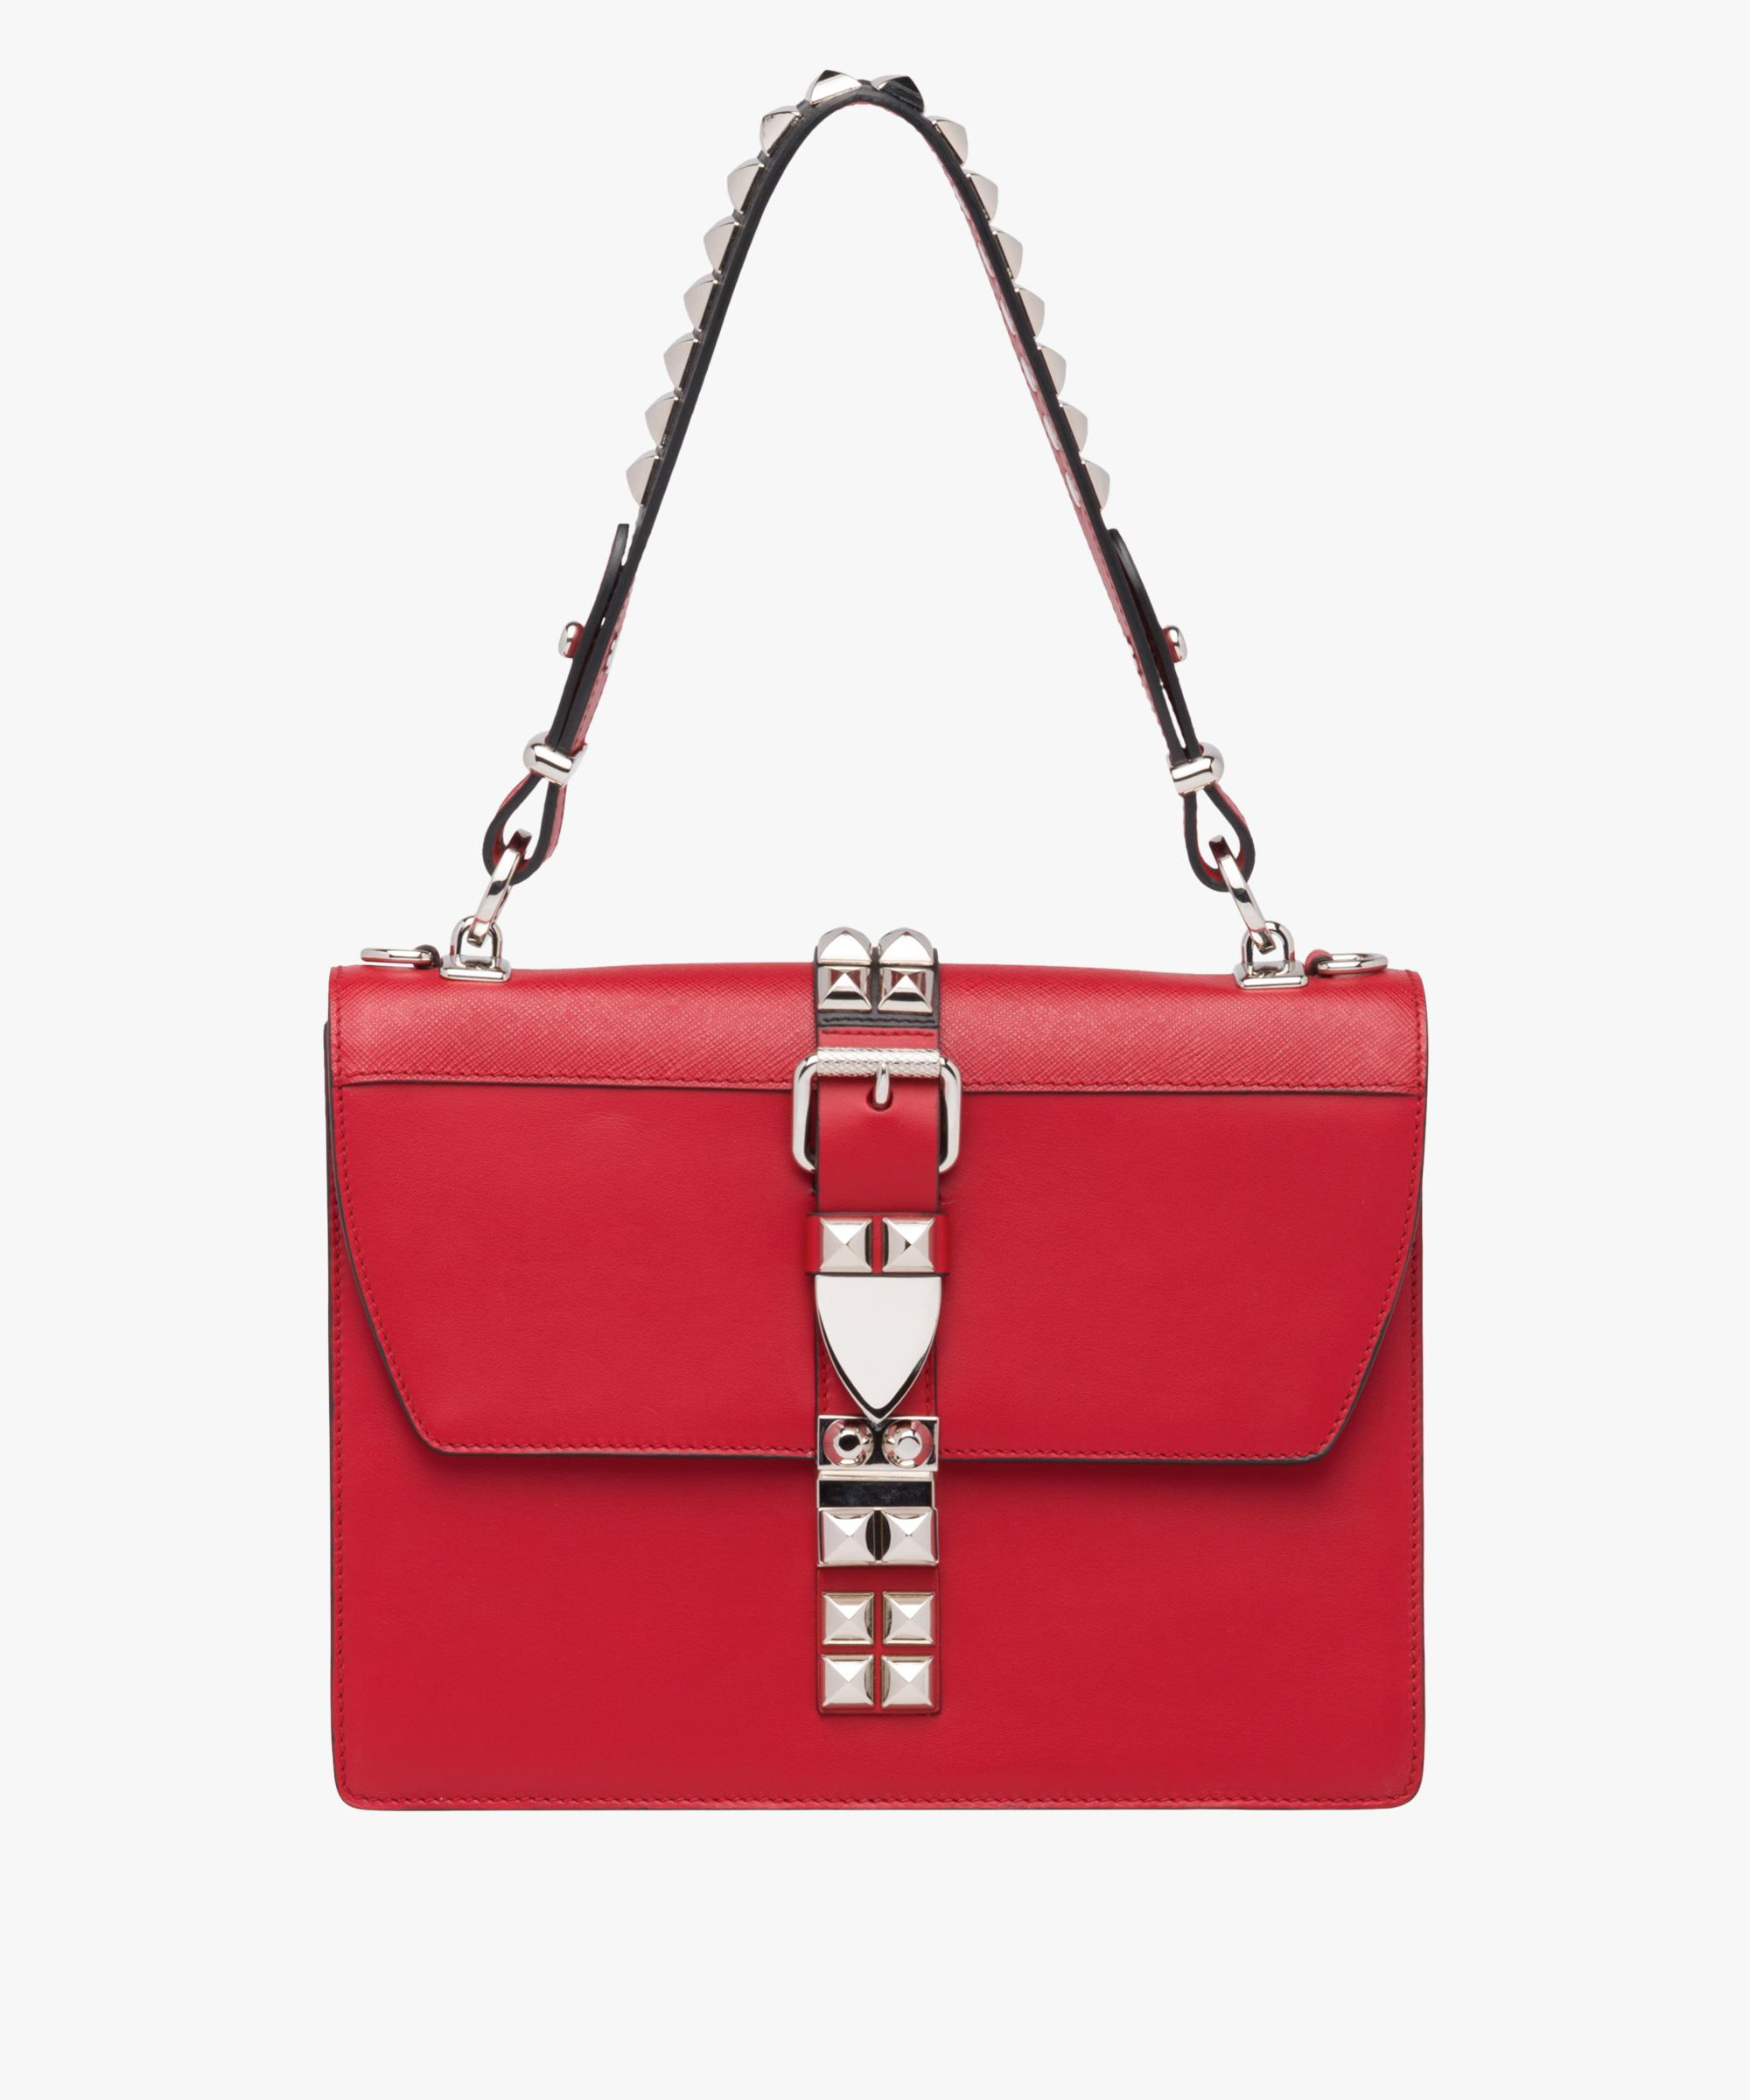 66e52c1b93f3 ... shop prada all designer products. womens red leather shoulder bag 6ffd7  648db